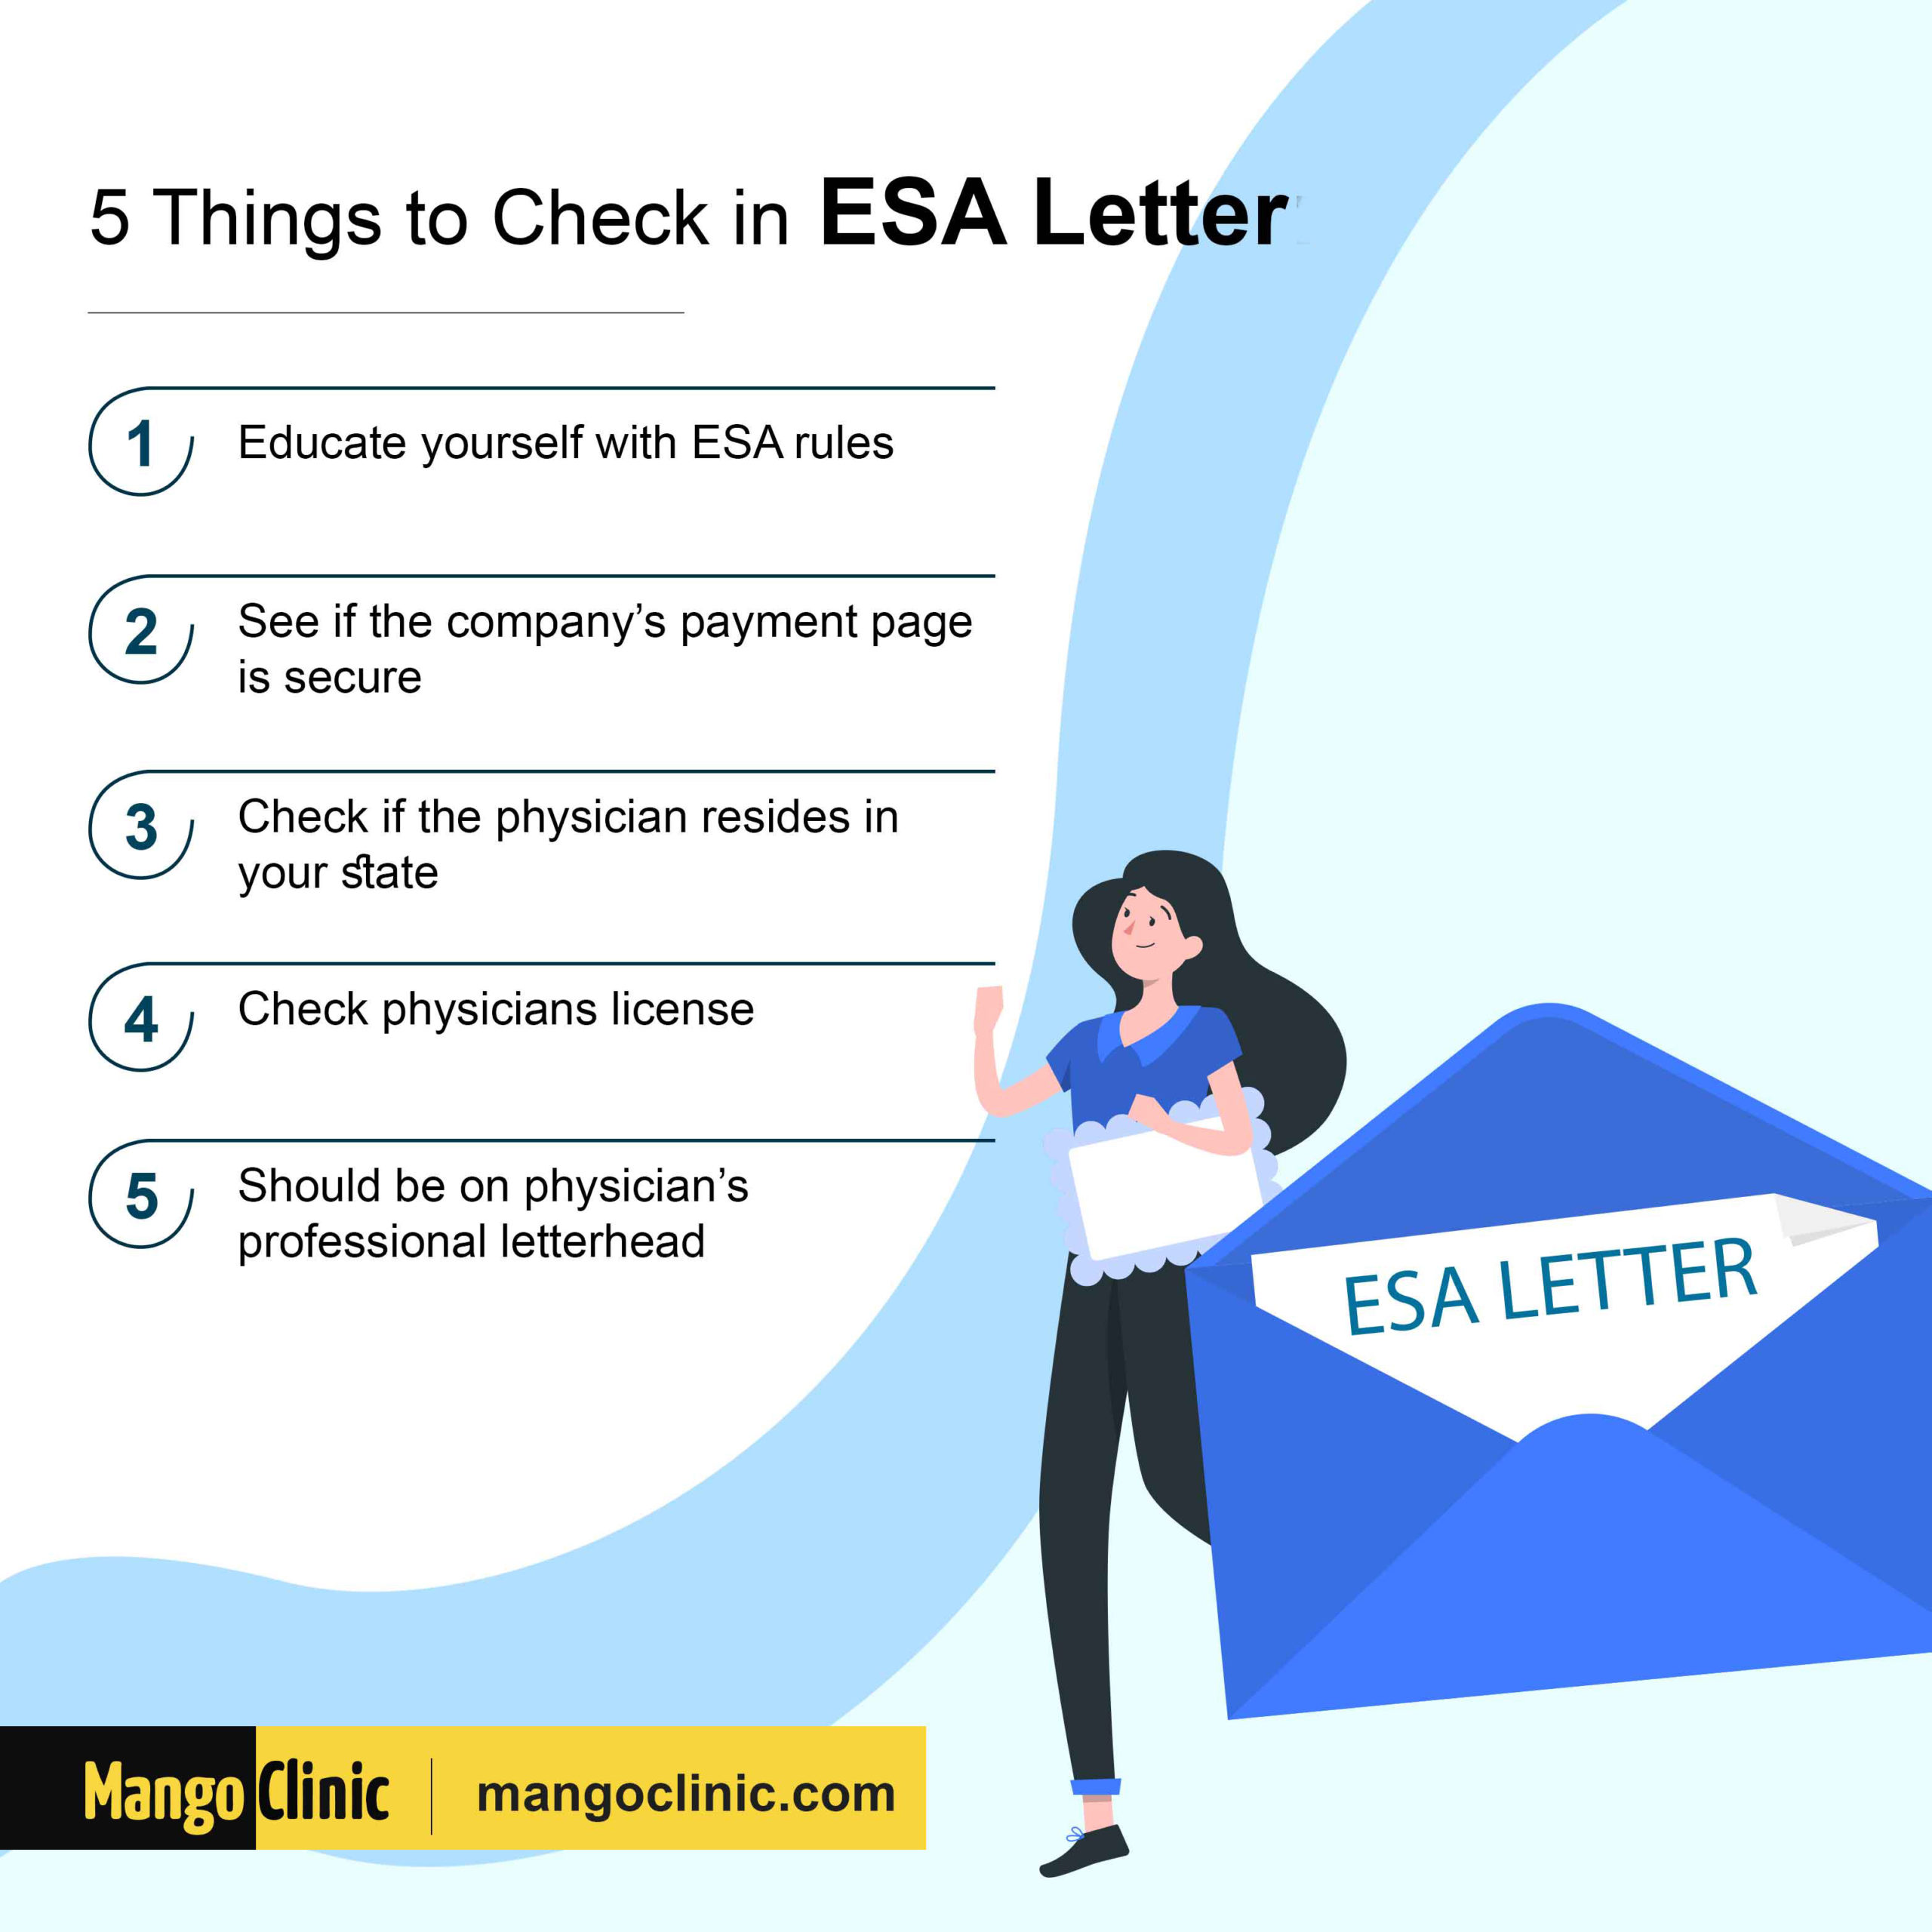 Things to check in ESA letter